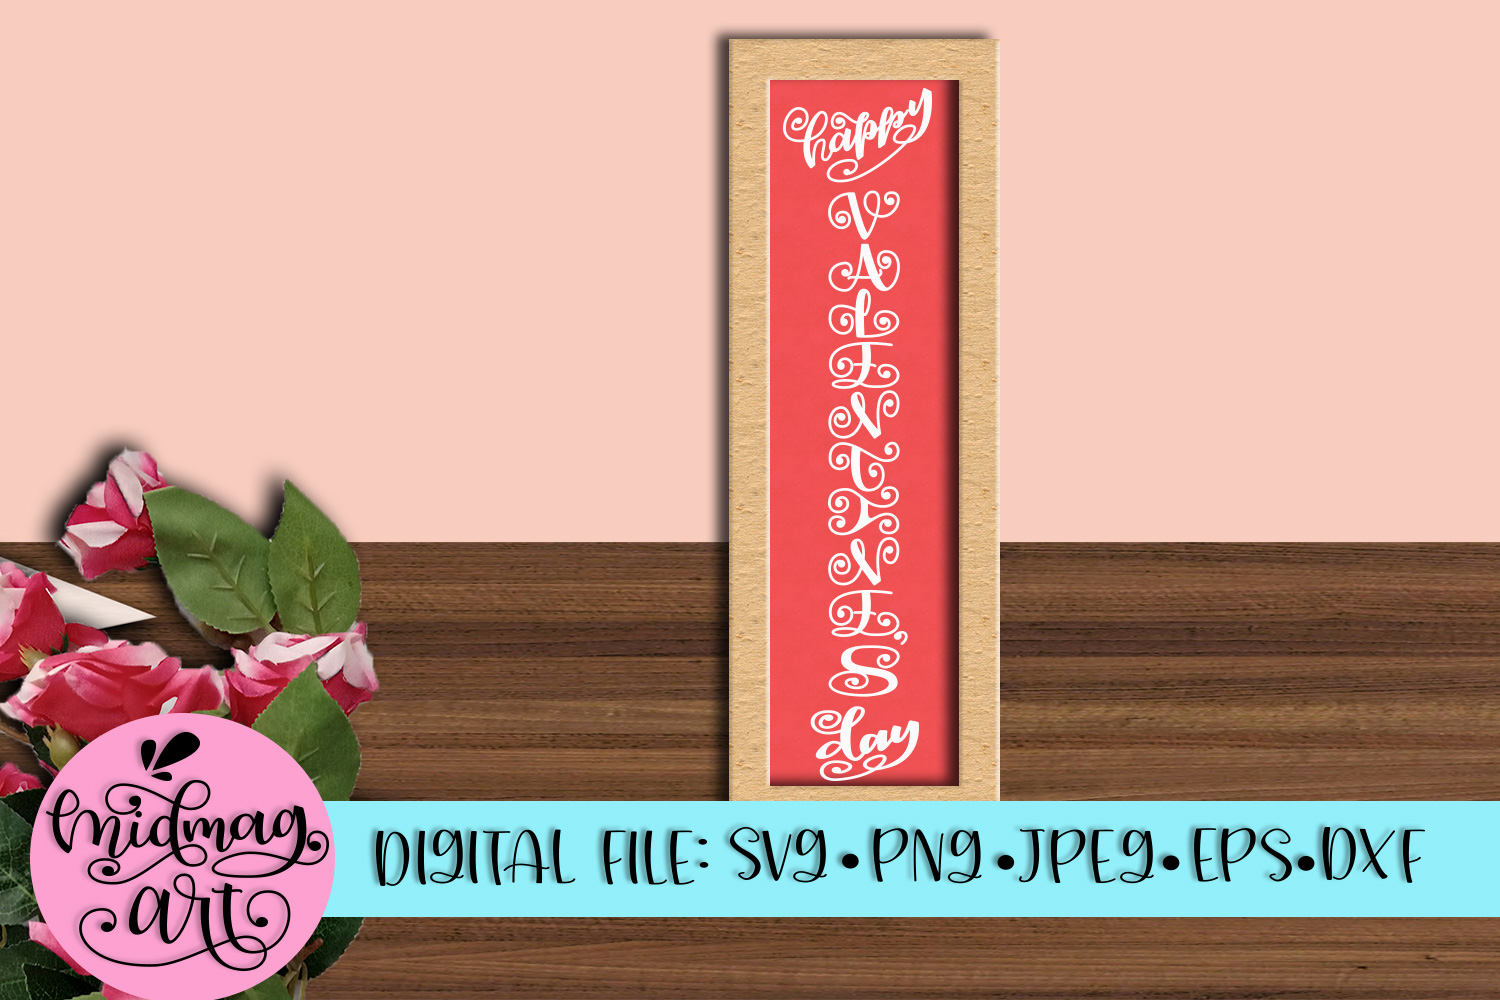 Happy Valentine's day svg, png, jpeg, eps and dxf example image 1